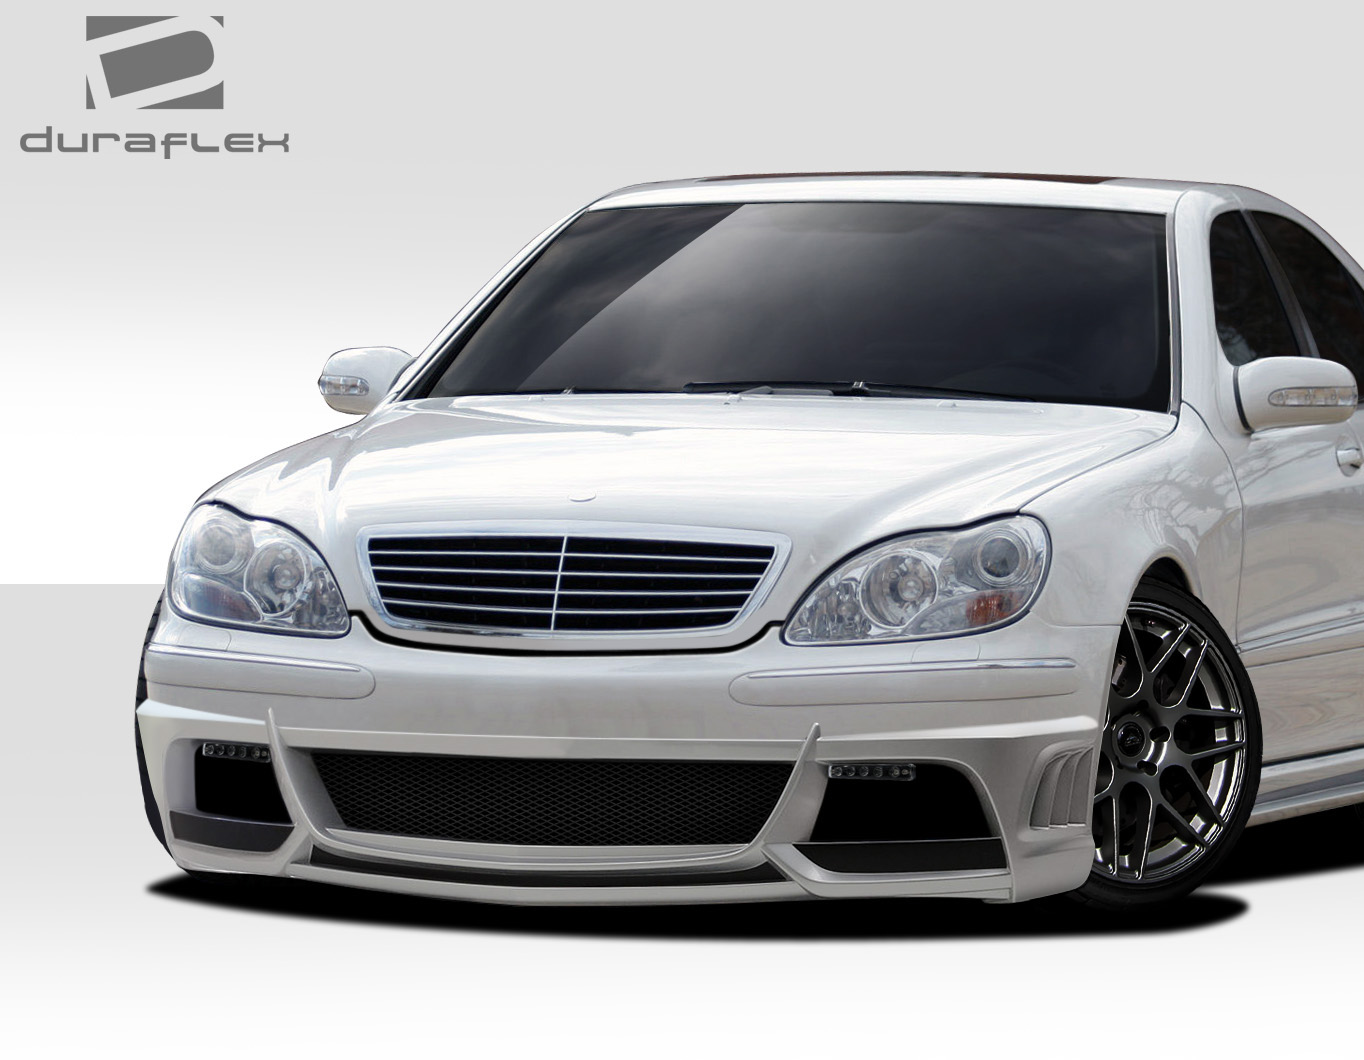 2000 mercedes s class fiberglass front bumper body kit 2000 2002 mercedes s class w220. Black Bedroom Furniture Sets. Home Design Ideas